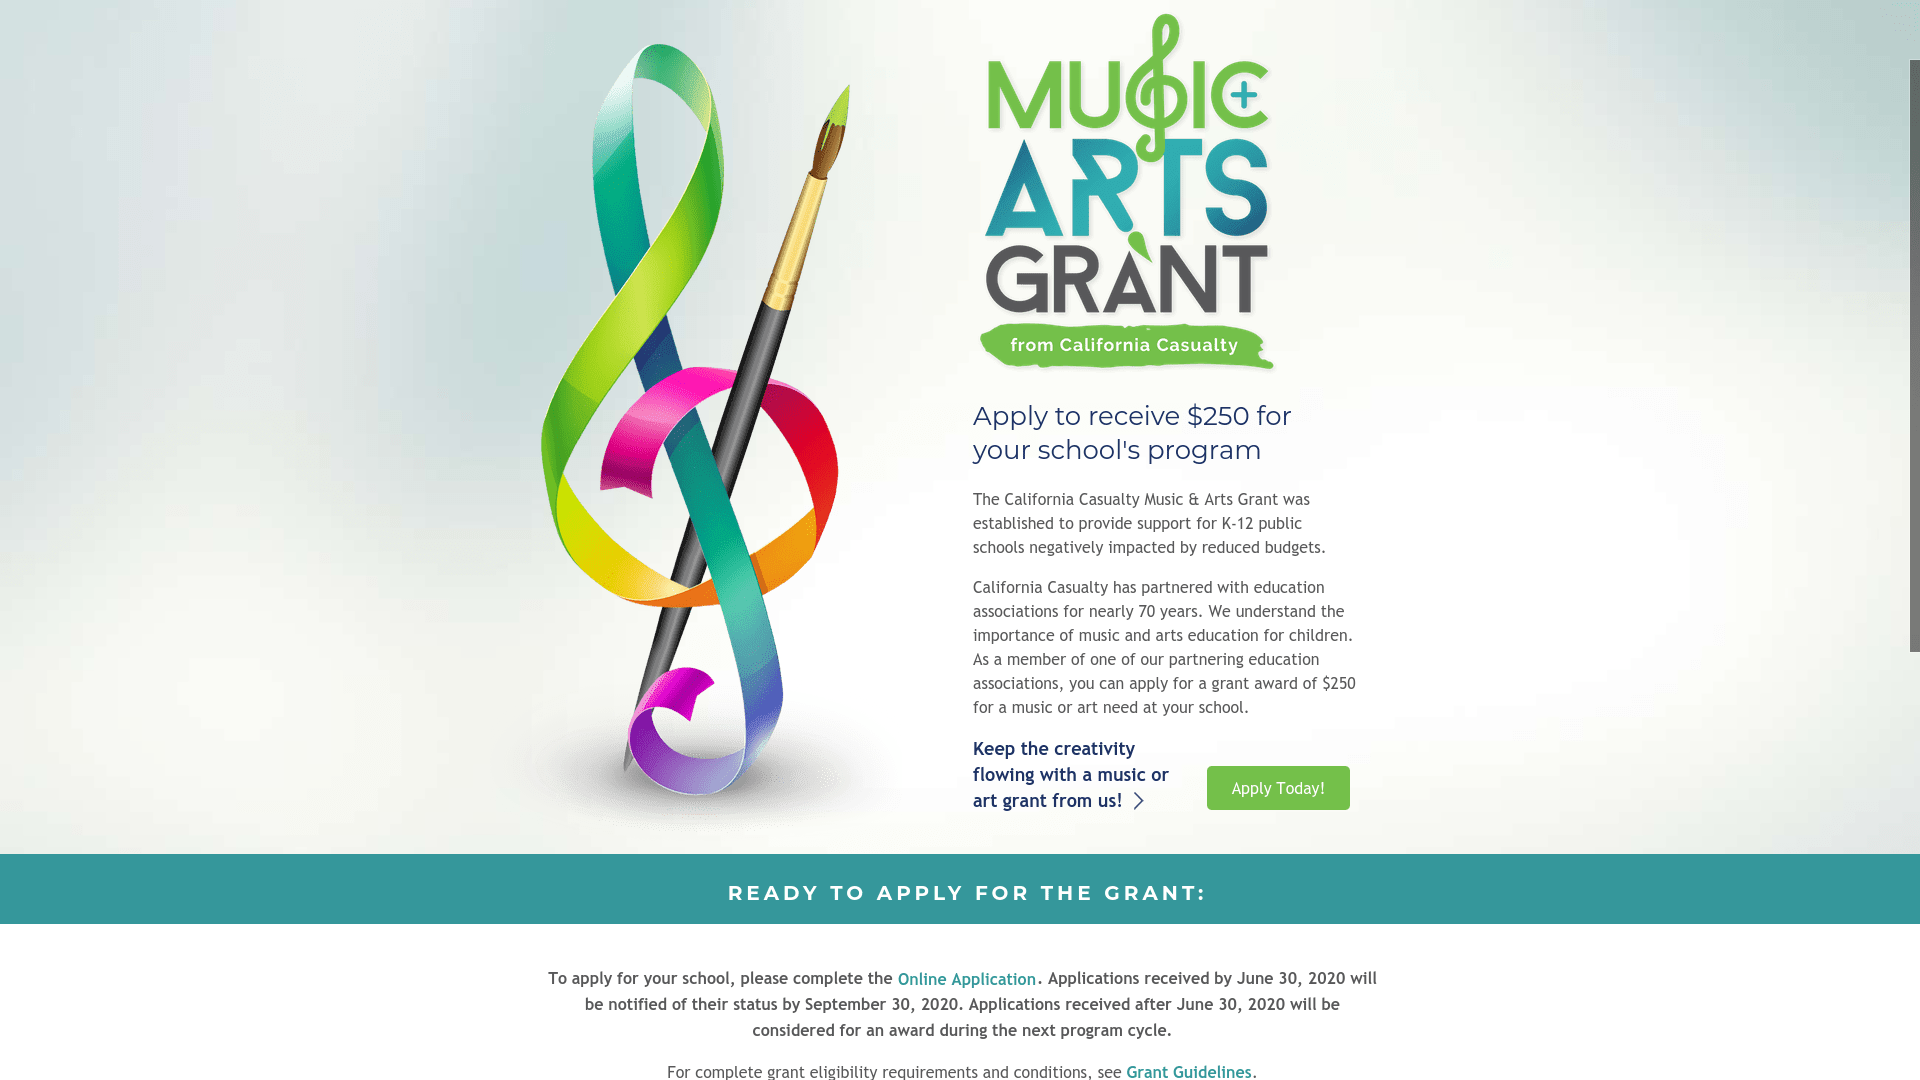 California Casualty Music and Arts Grant 2021